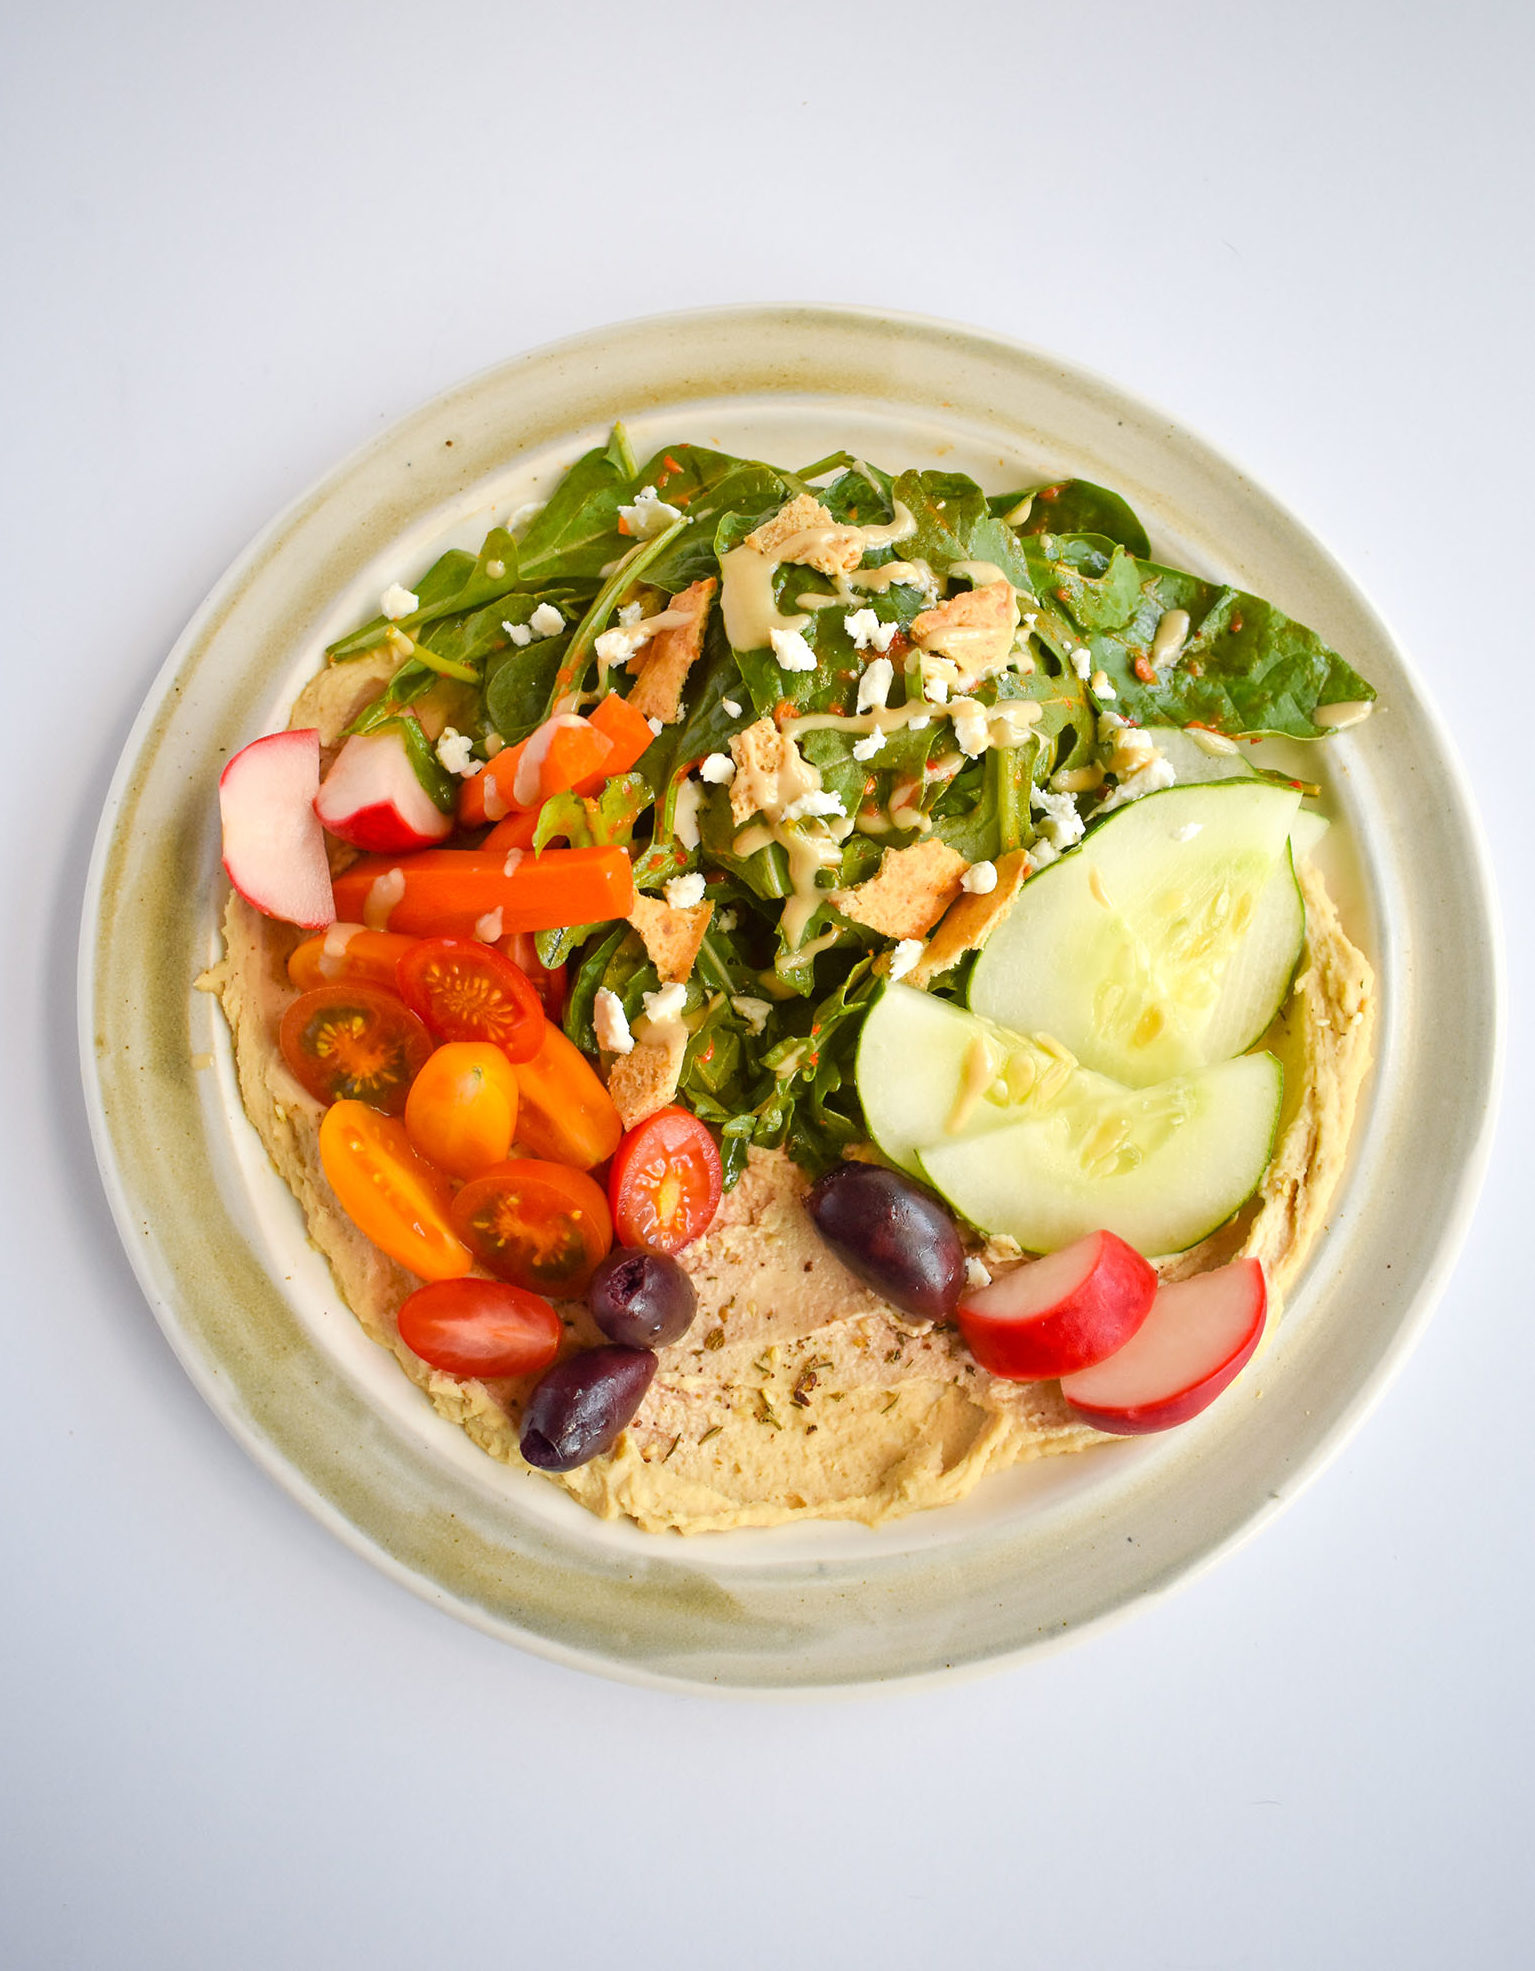 Hummus for Dinner- Hummus and vegetables on a plate.